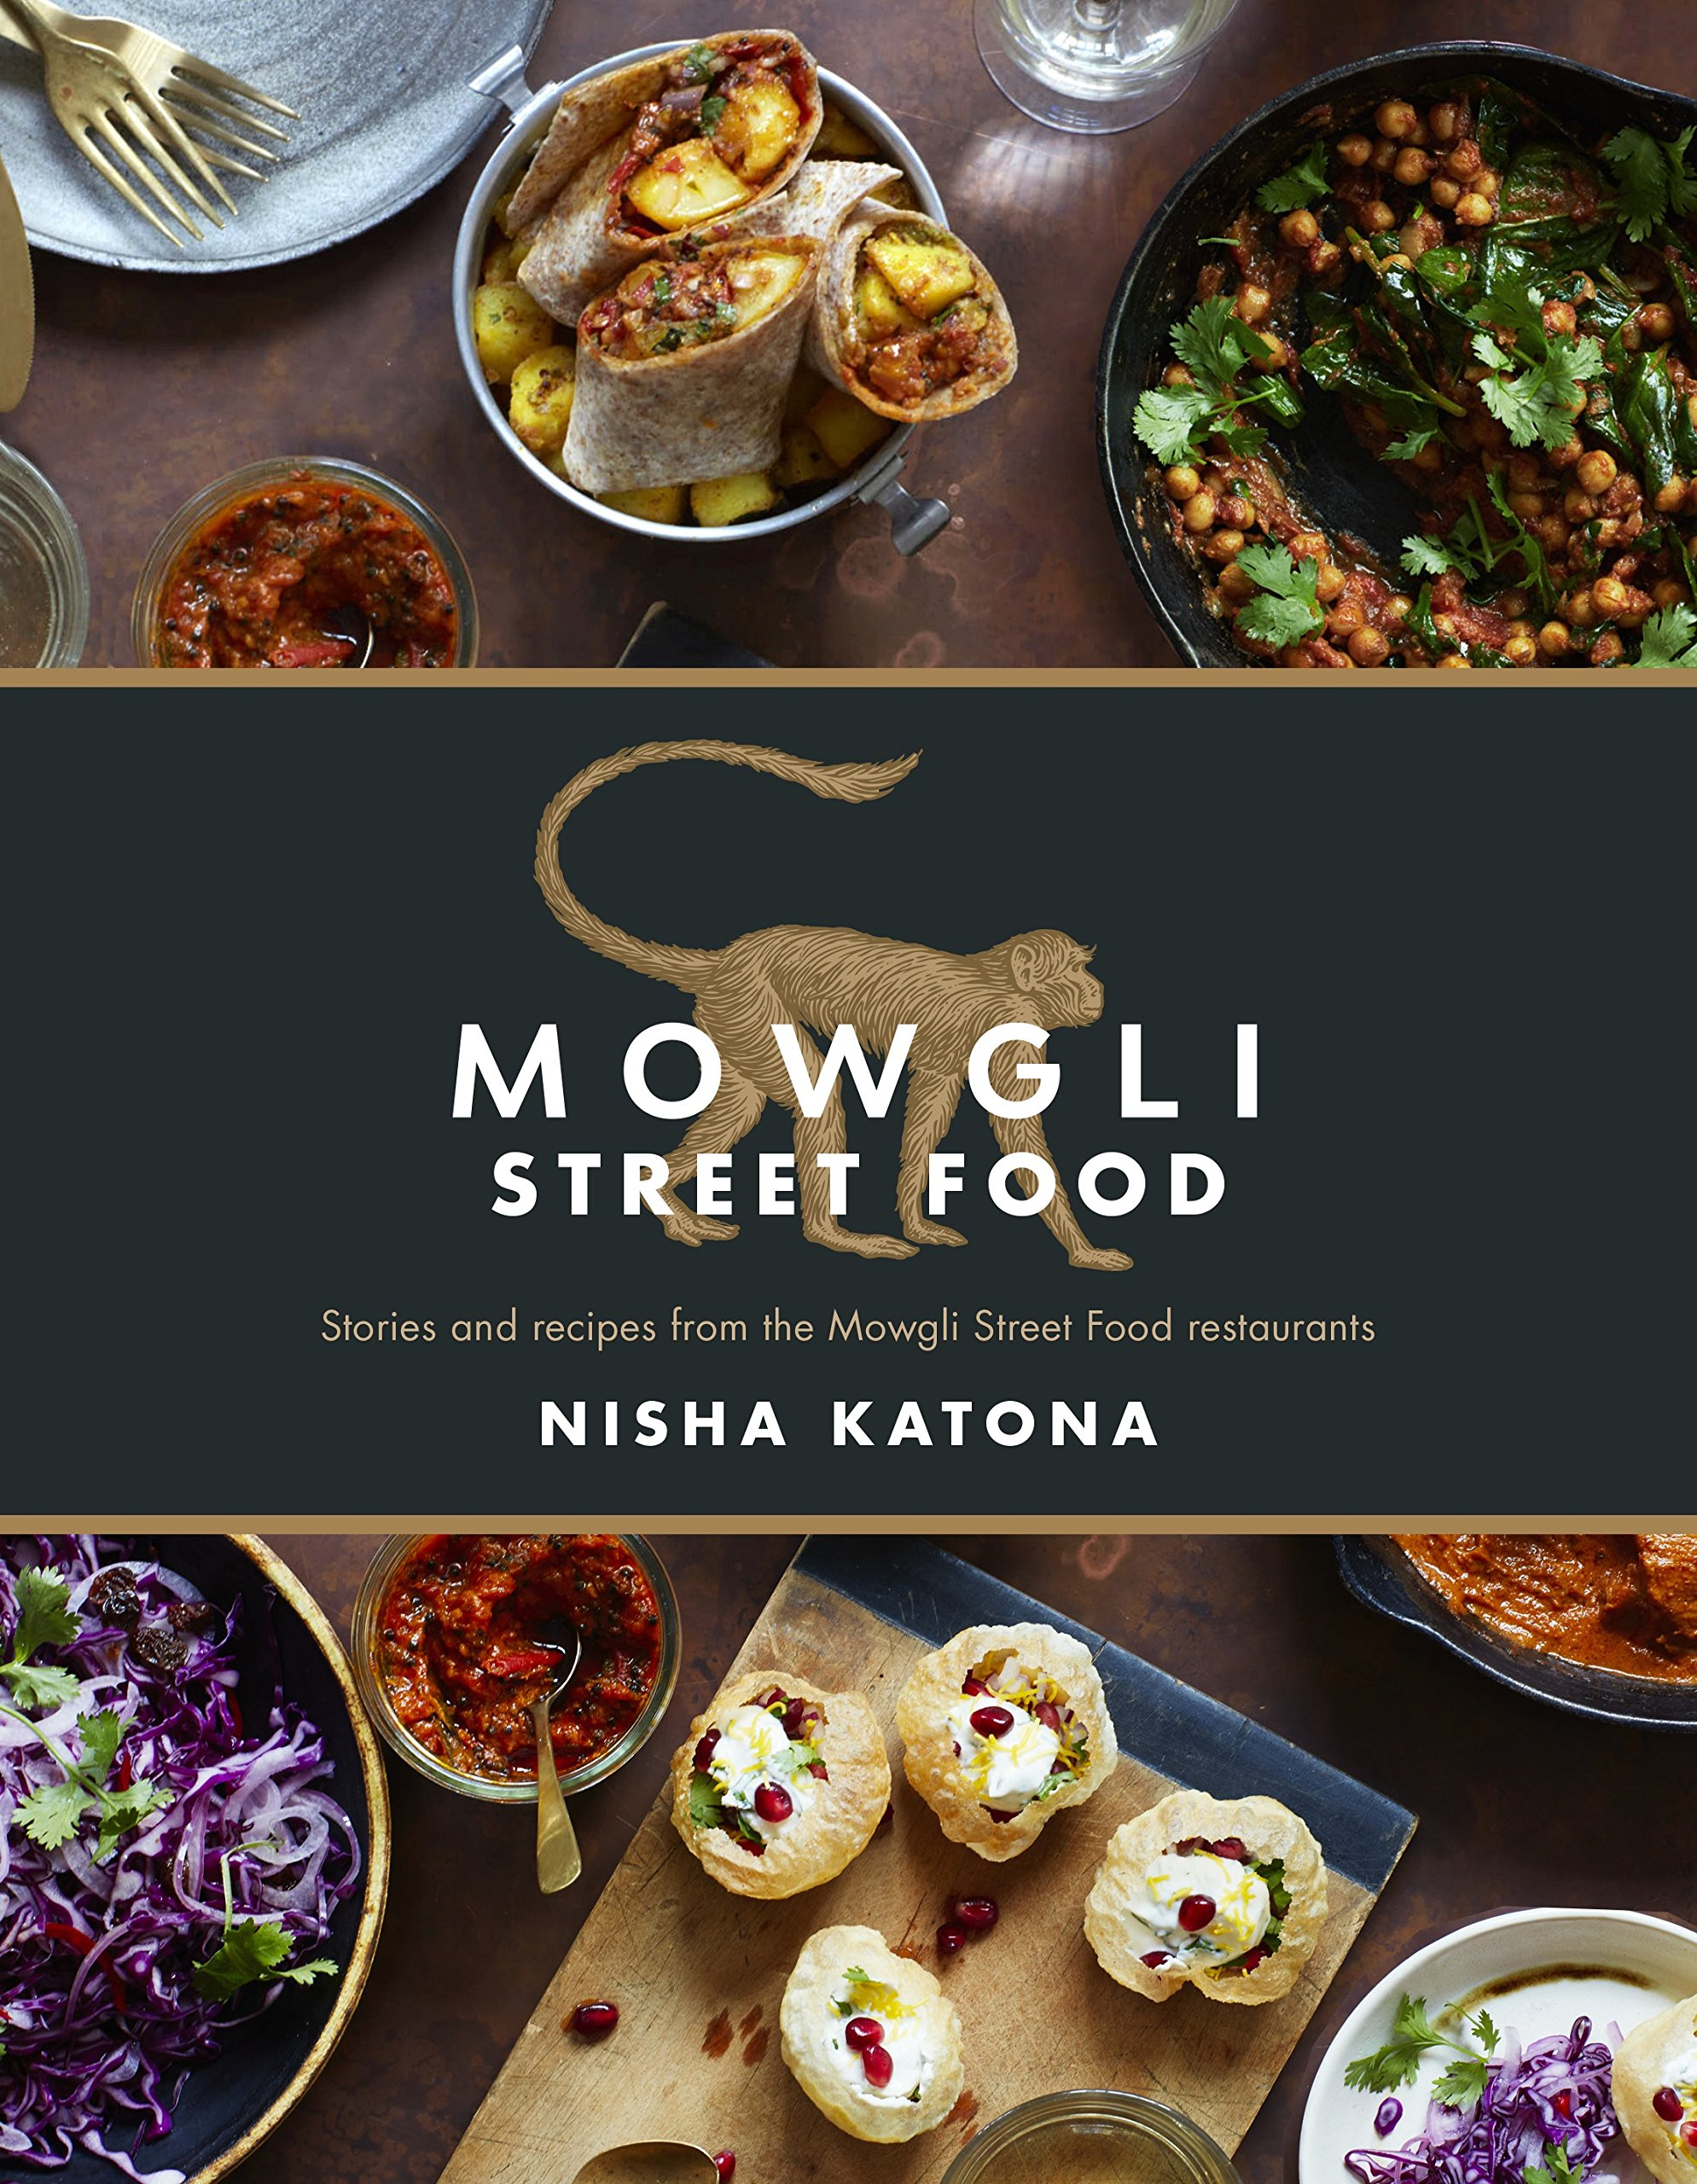 Mowgli street food stories and recipes from the mowgli street mowgli street food stories and recipes from the mowgli street food restaurants amazon nisha katona 9781848993266 books forumfinder Choice Image